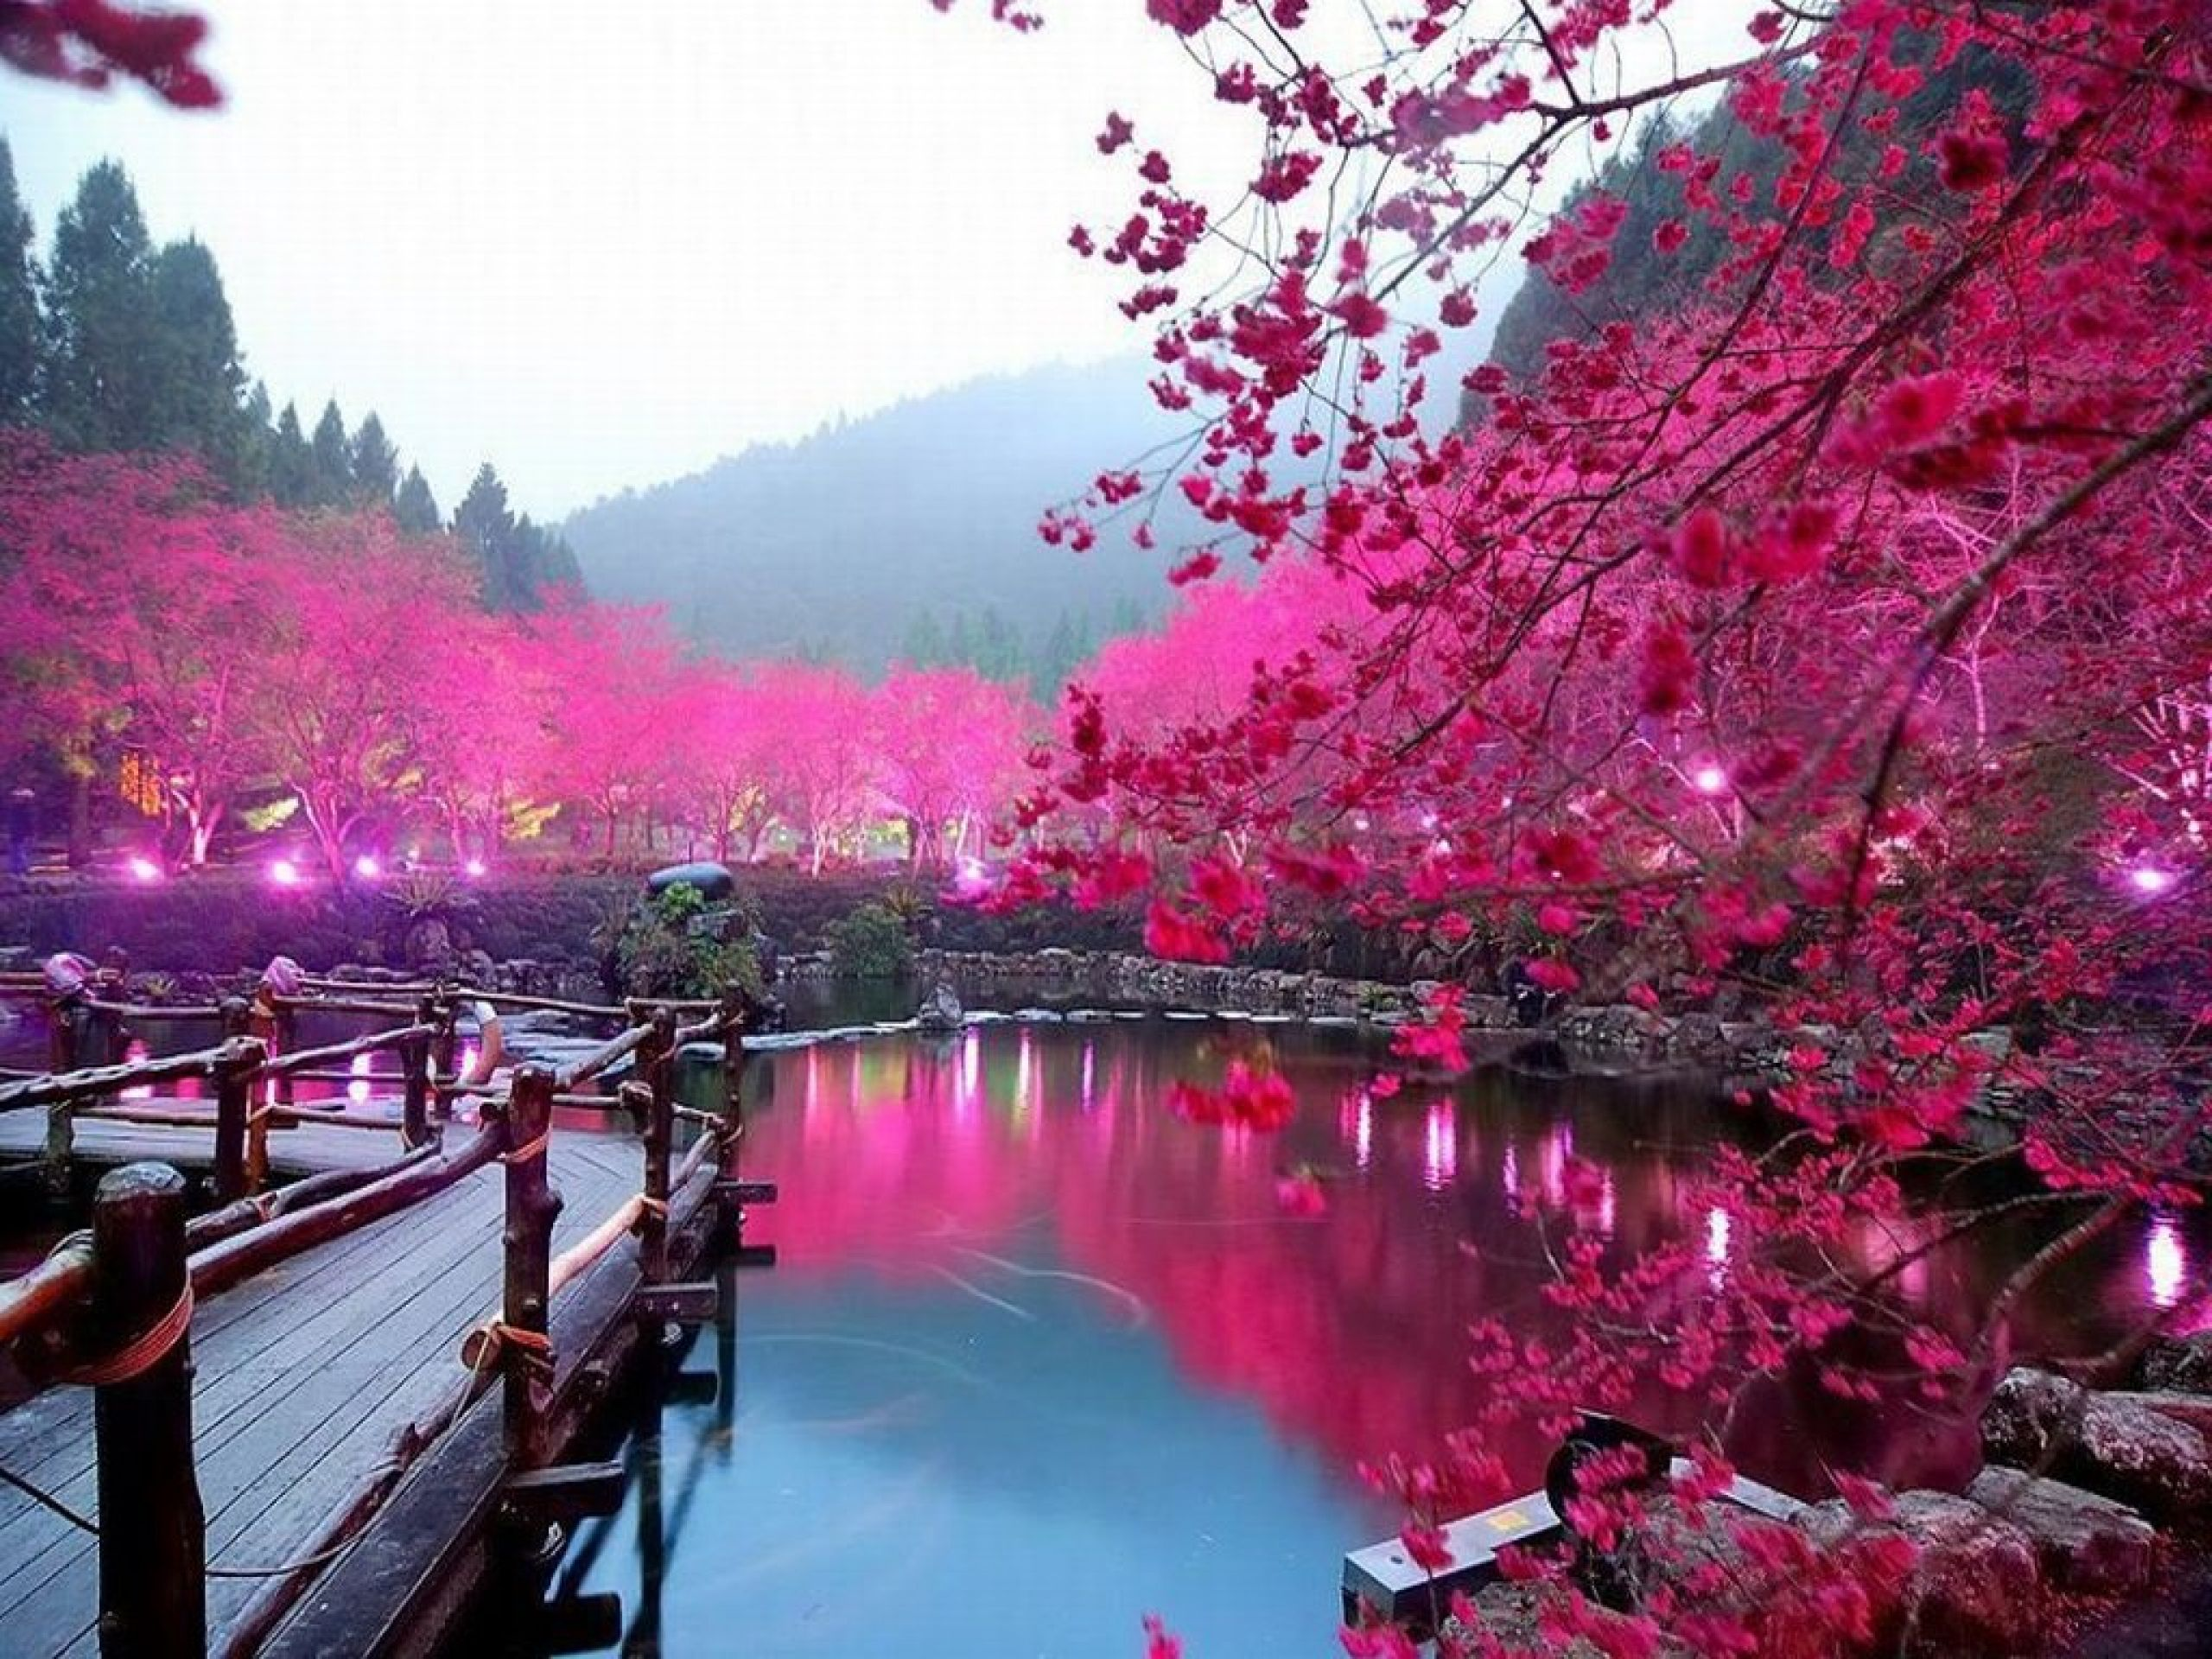 http://www.serlo.info/wp-content/uploads/2013/12/hd-wallpapers-lake-sakura-japan-wallpaper-cherry-blossom-1024x768-wallpaper.jpg